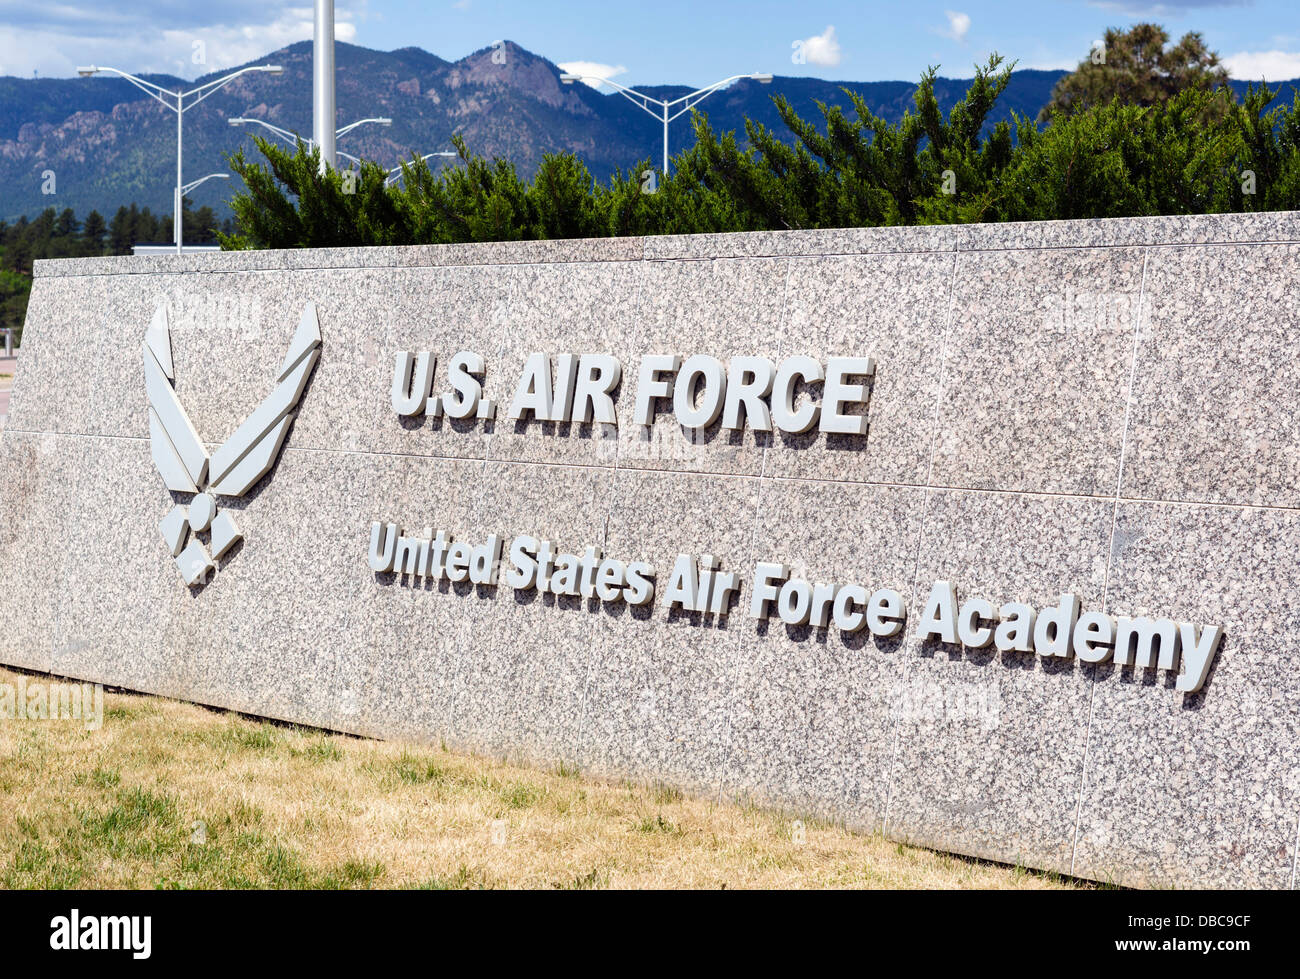 Entrance to the United States Air Force Academy, Colorado Springs, Colorado, USA - Stock Image